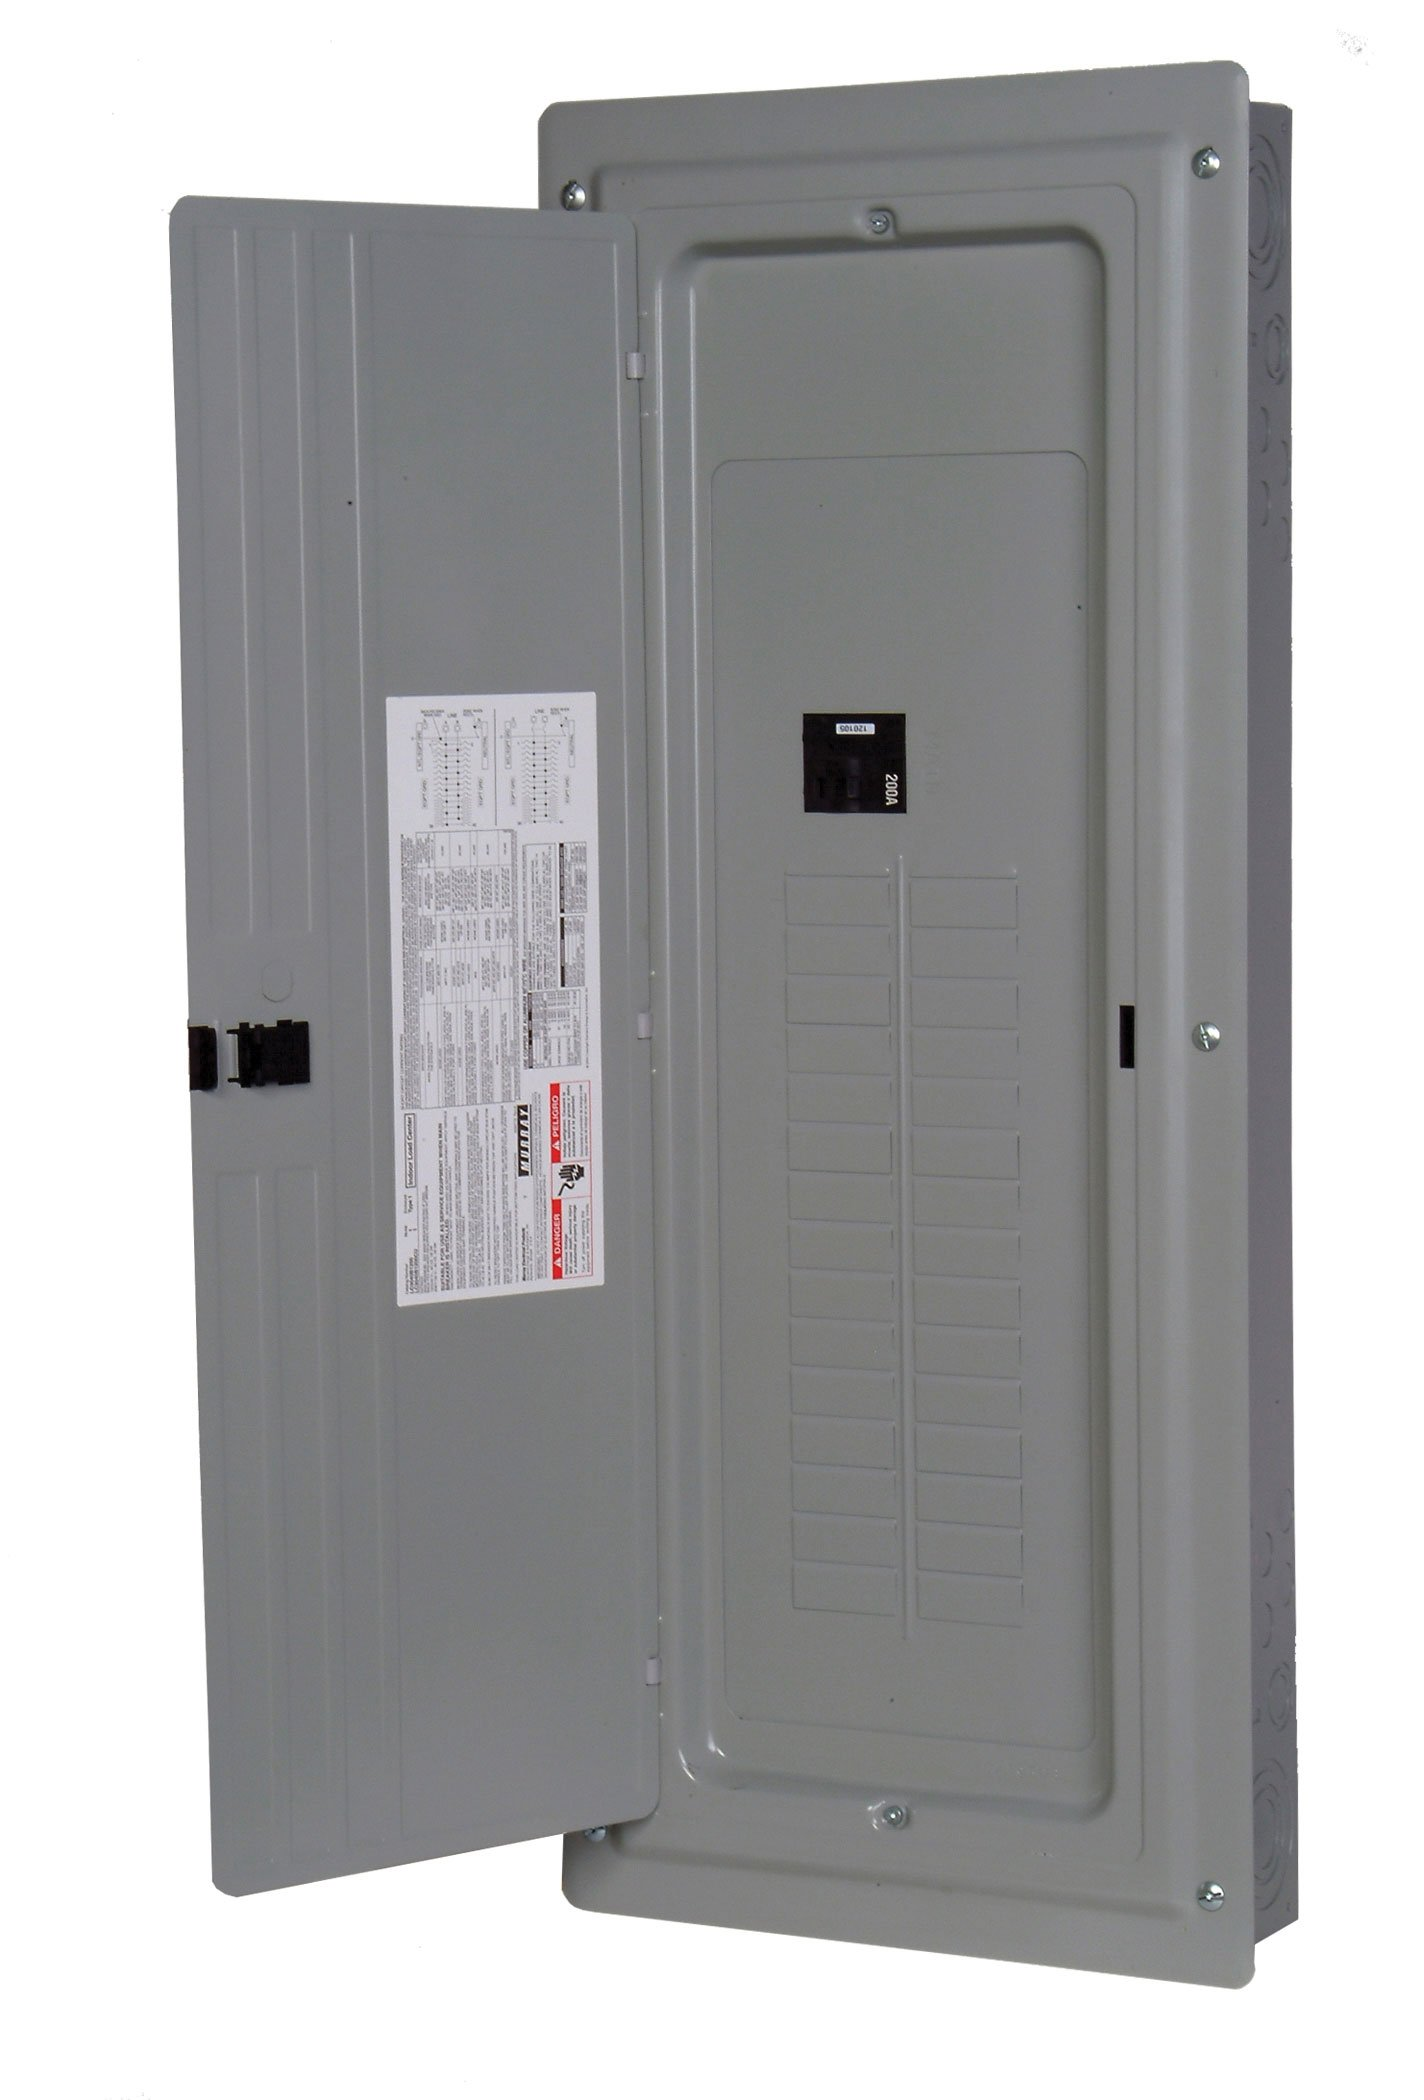 Murray LC4040B1200P 40 Space 40 Circuit 200 Amp Main Breaker Indoor Load Center Value Pack